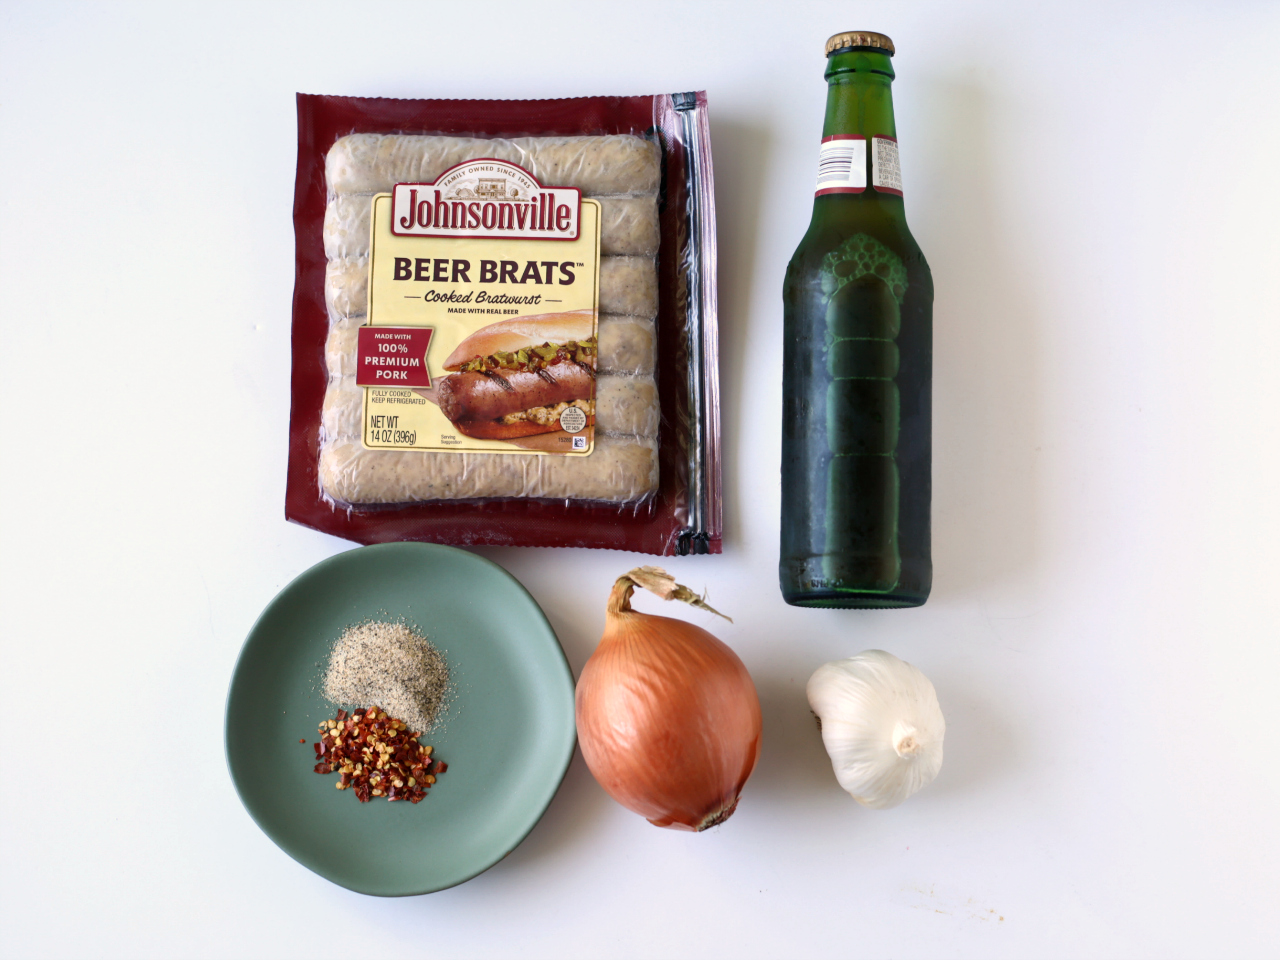 Johnsonville Beer Brats in package, seasonings on a blue plate, whole onion, whole garlic, a bottle of beer.